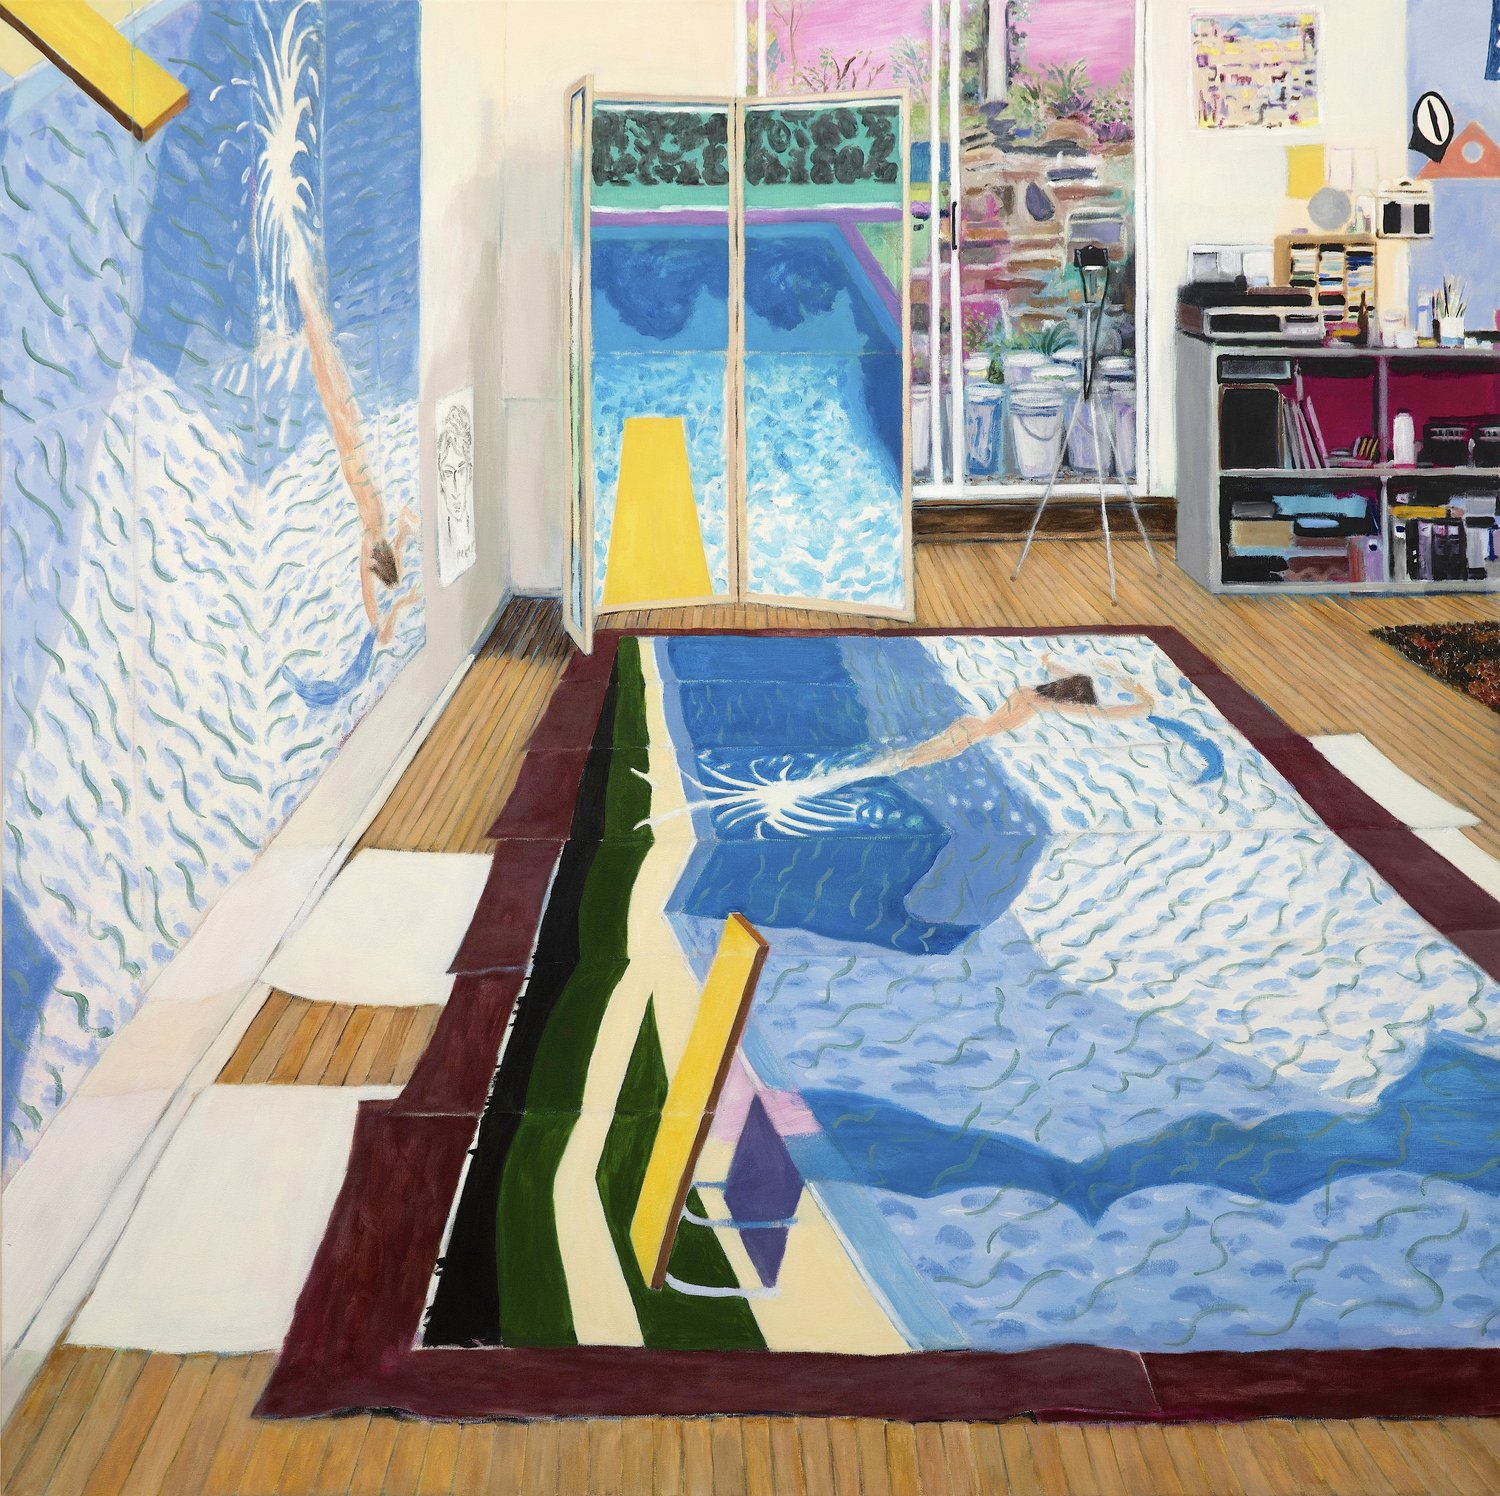 Hockney's Studio (while painting Paper Pools, 1978) 2016